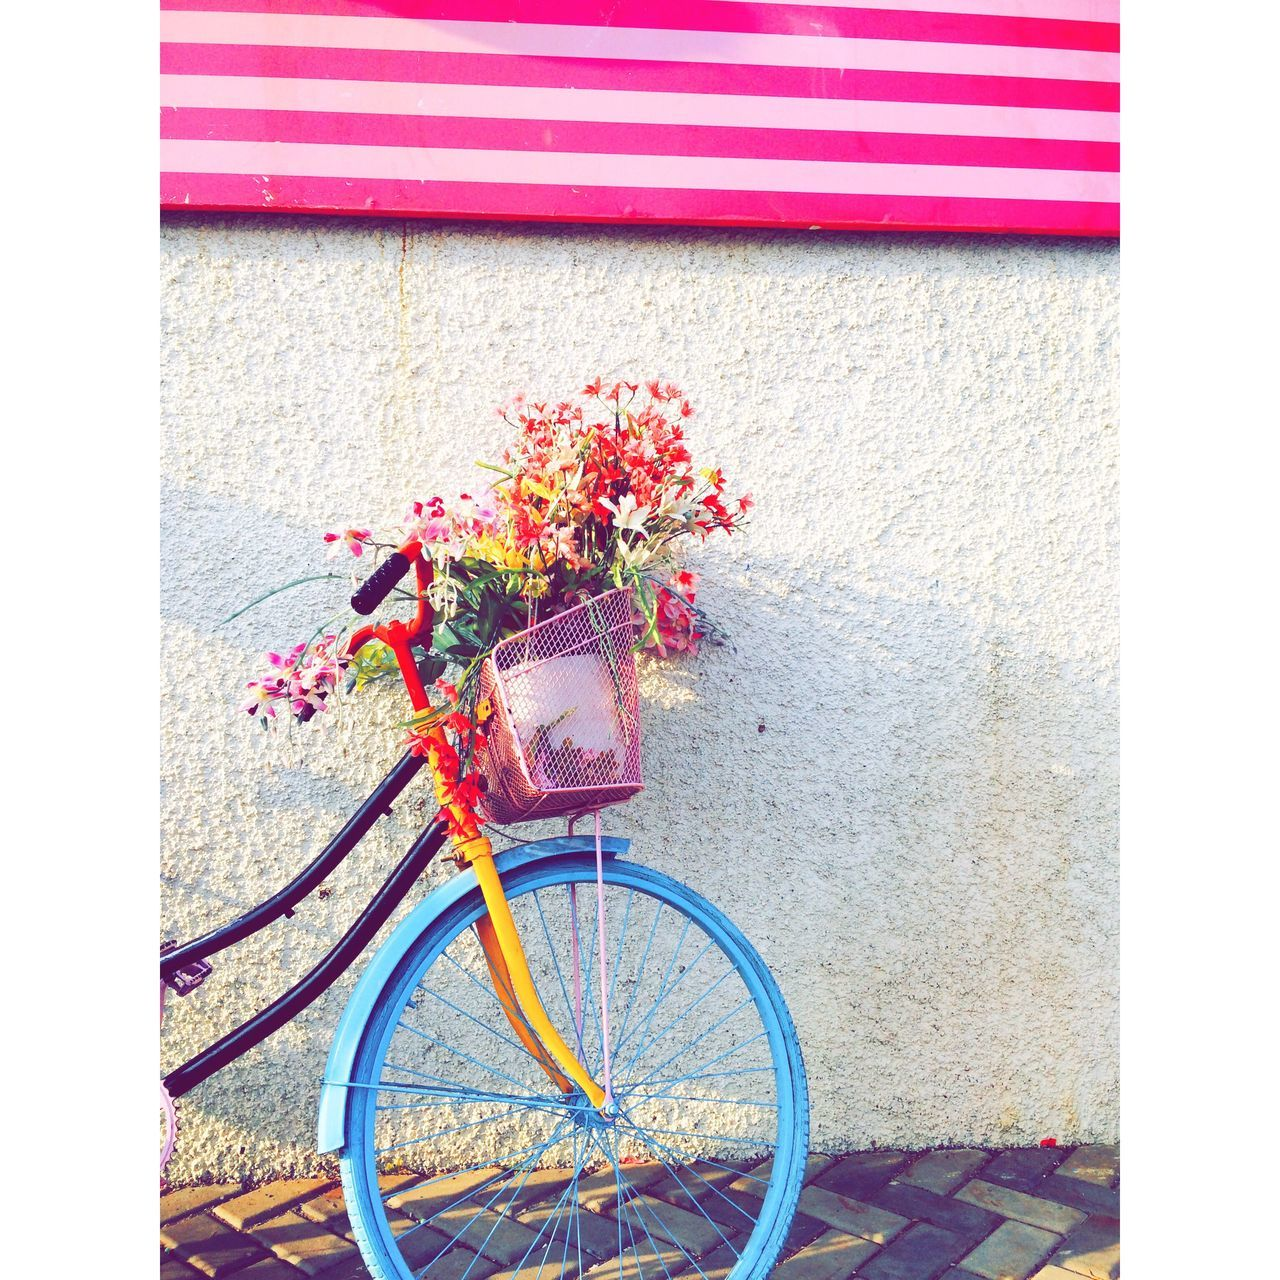 flower, bicycle, outdoors, day, transportation, built structure, no people, mode of transport, building exterior, architecture, land vehicle, red, multi colored, freshness, fragility, nature, close-up